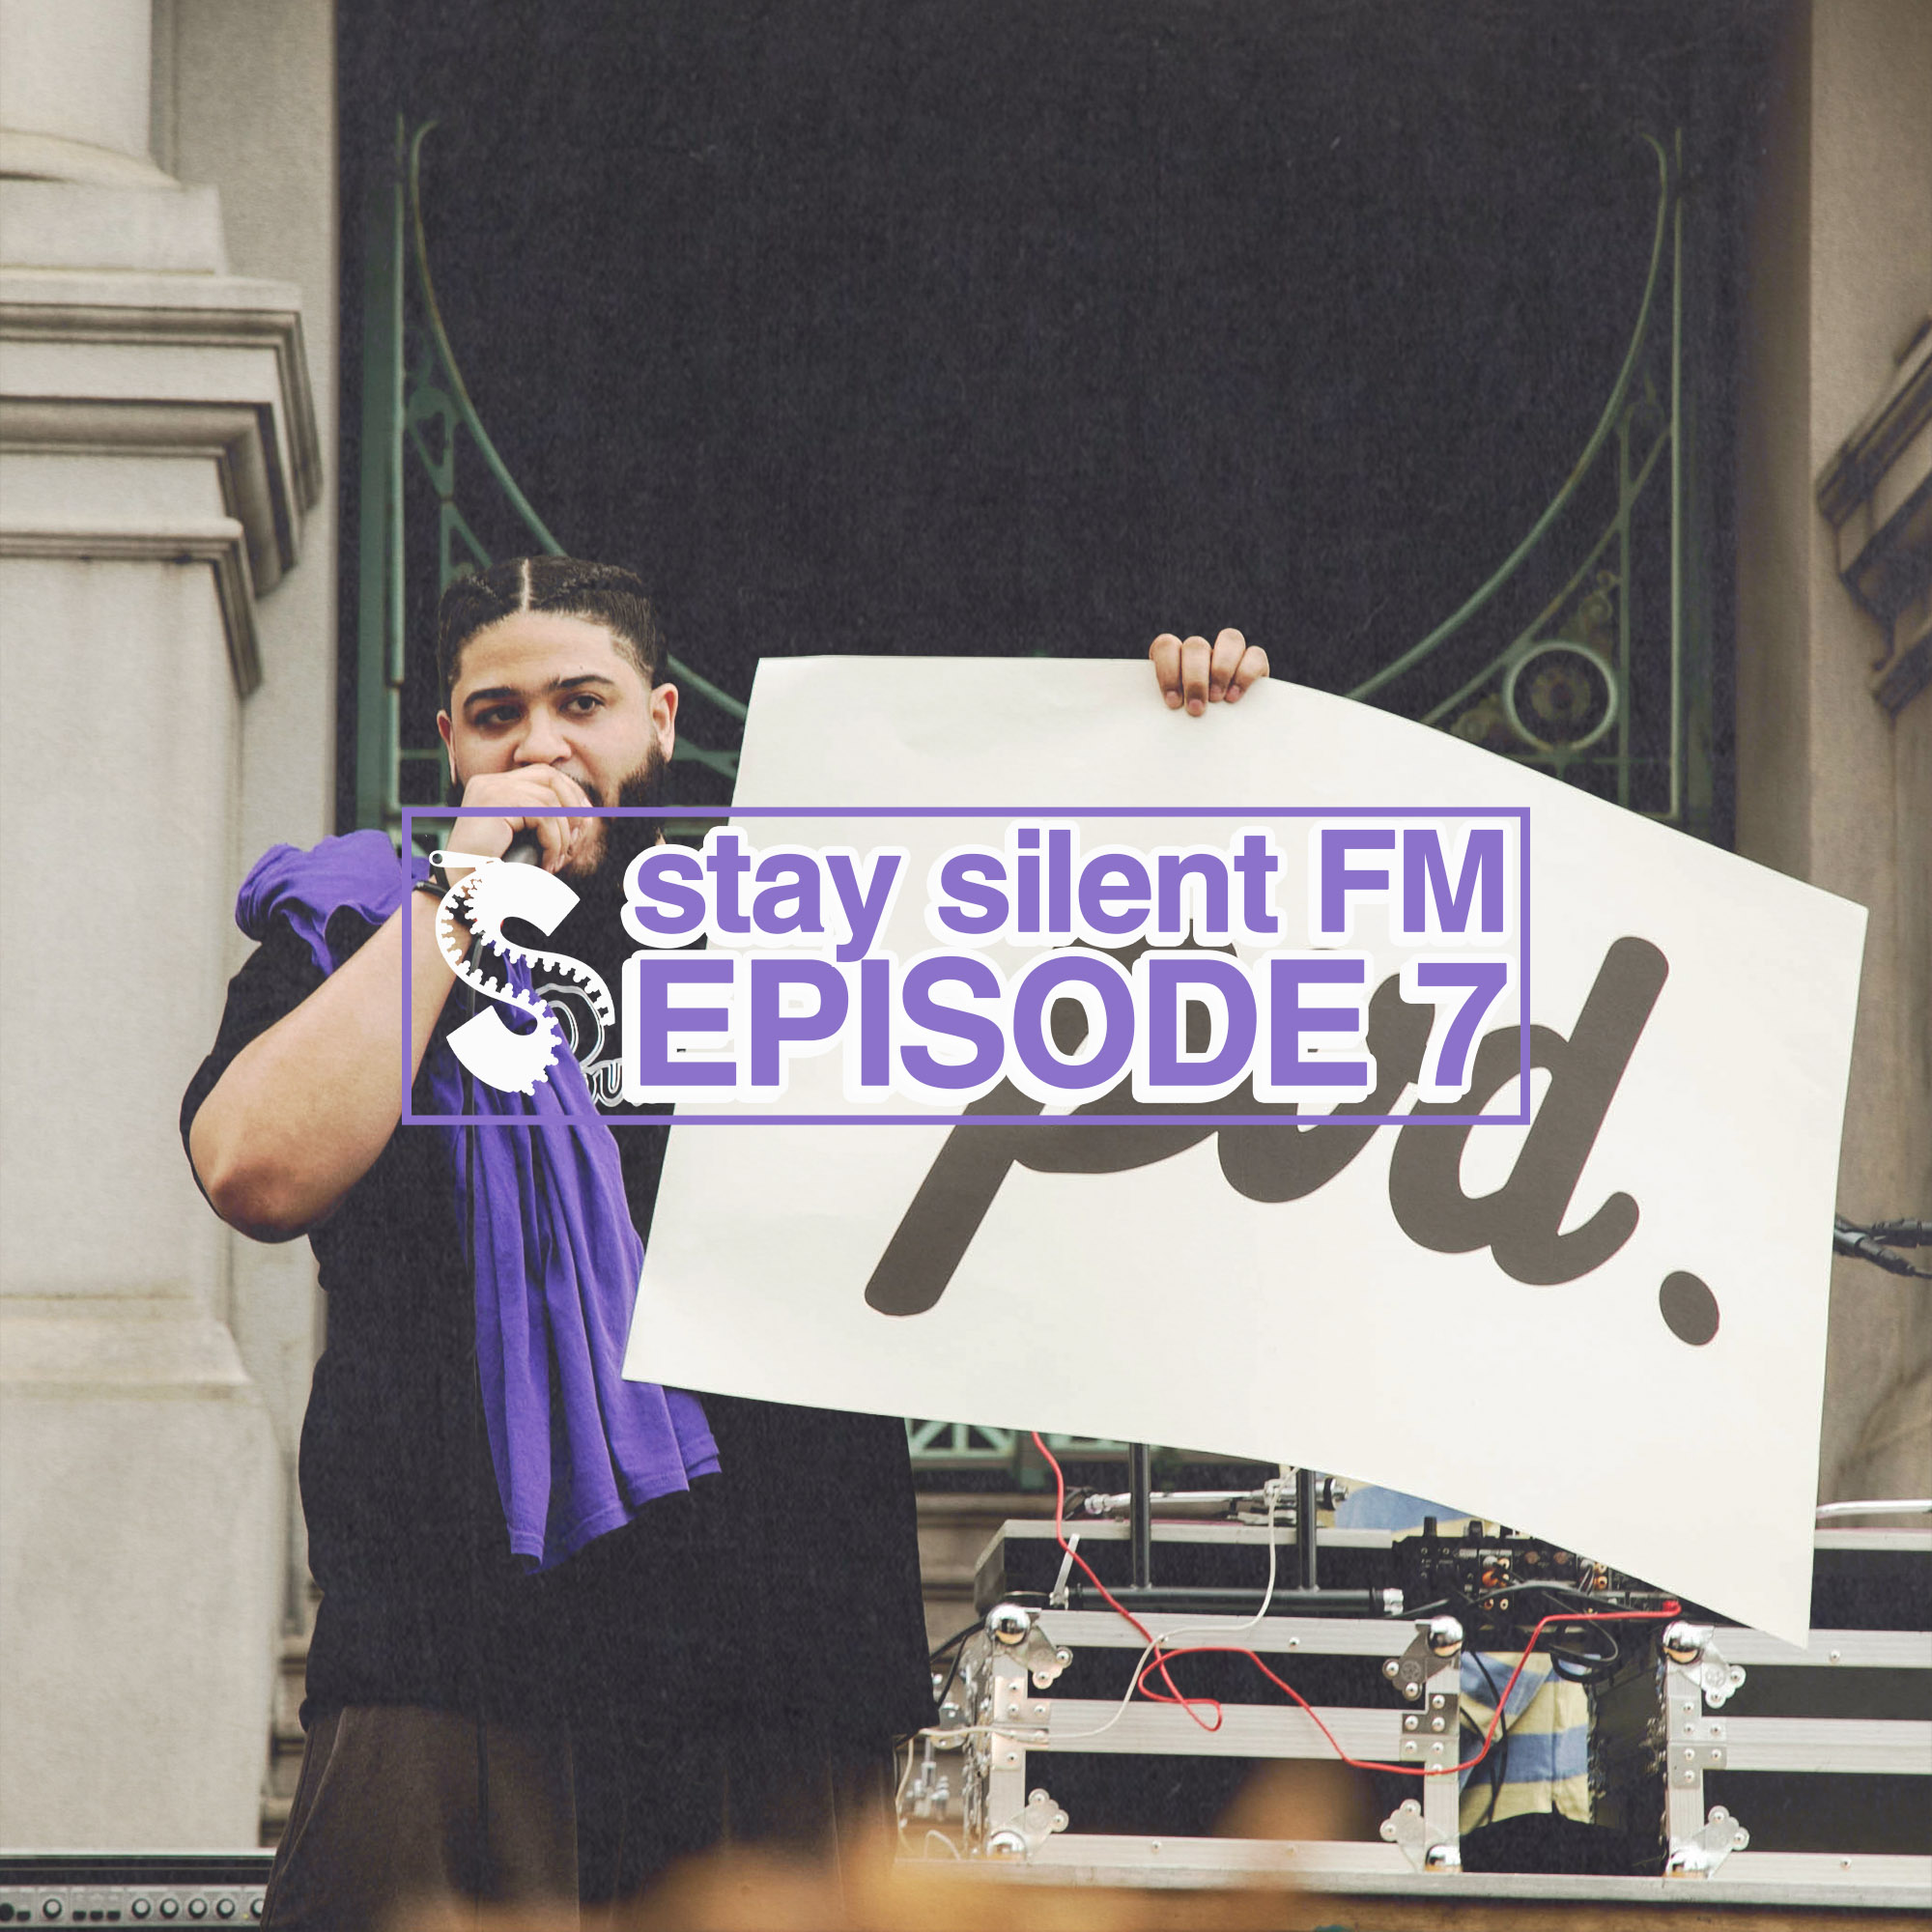 stay silent FM episode 7.jpg